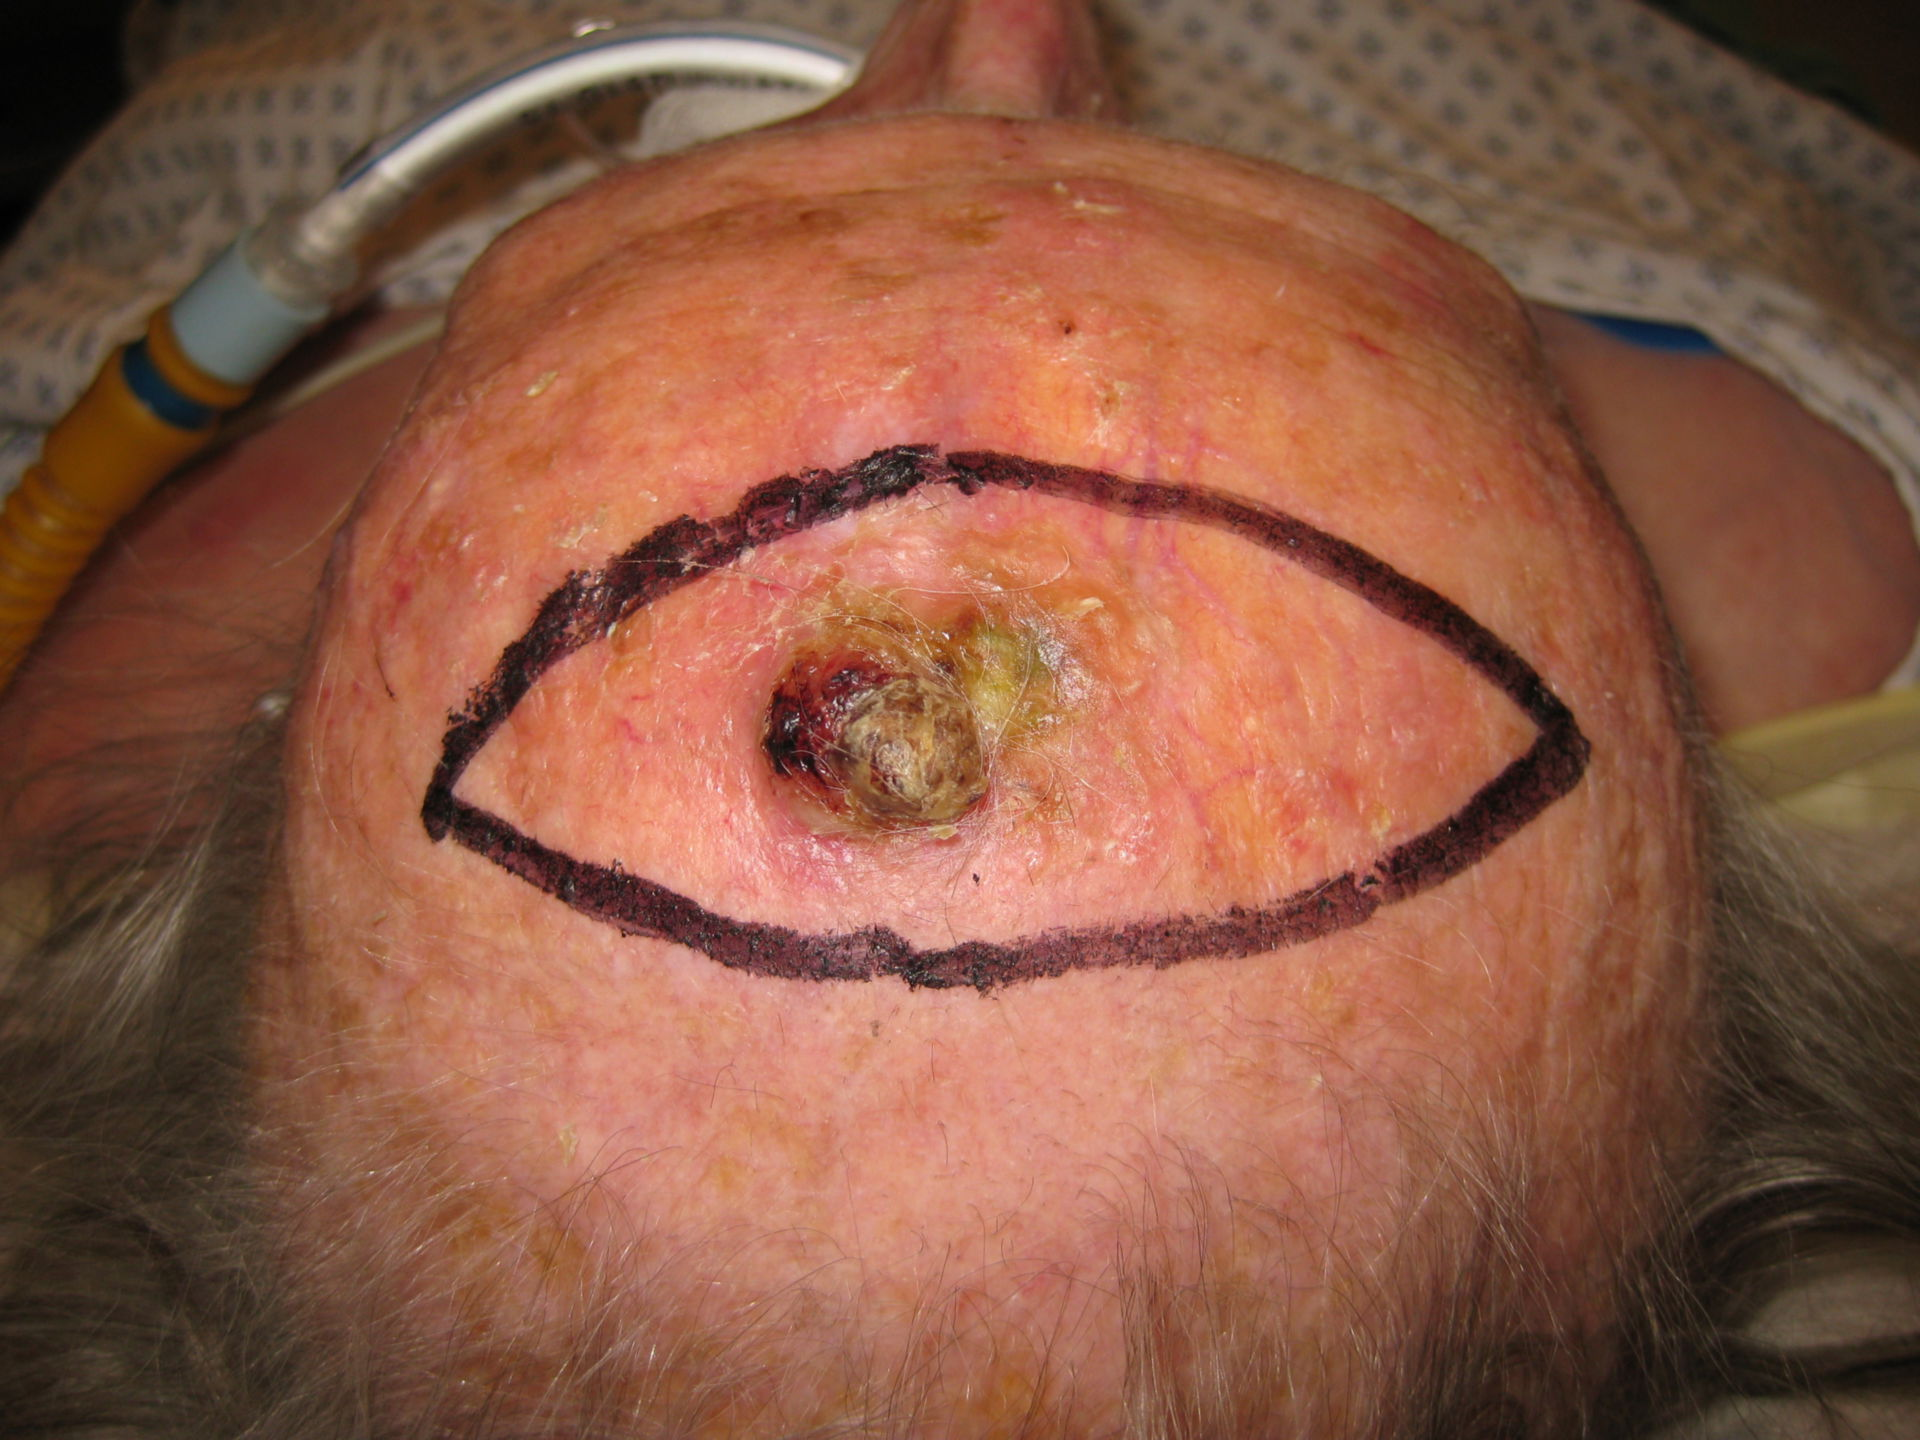 Squamous cell carcinoma of the scalp